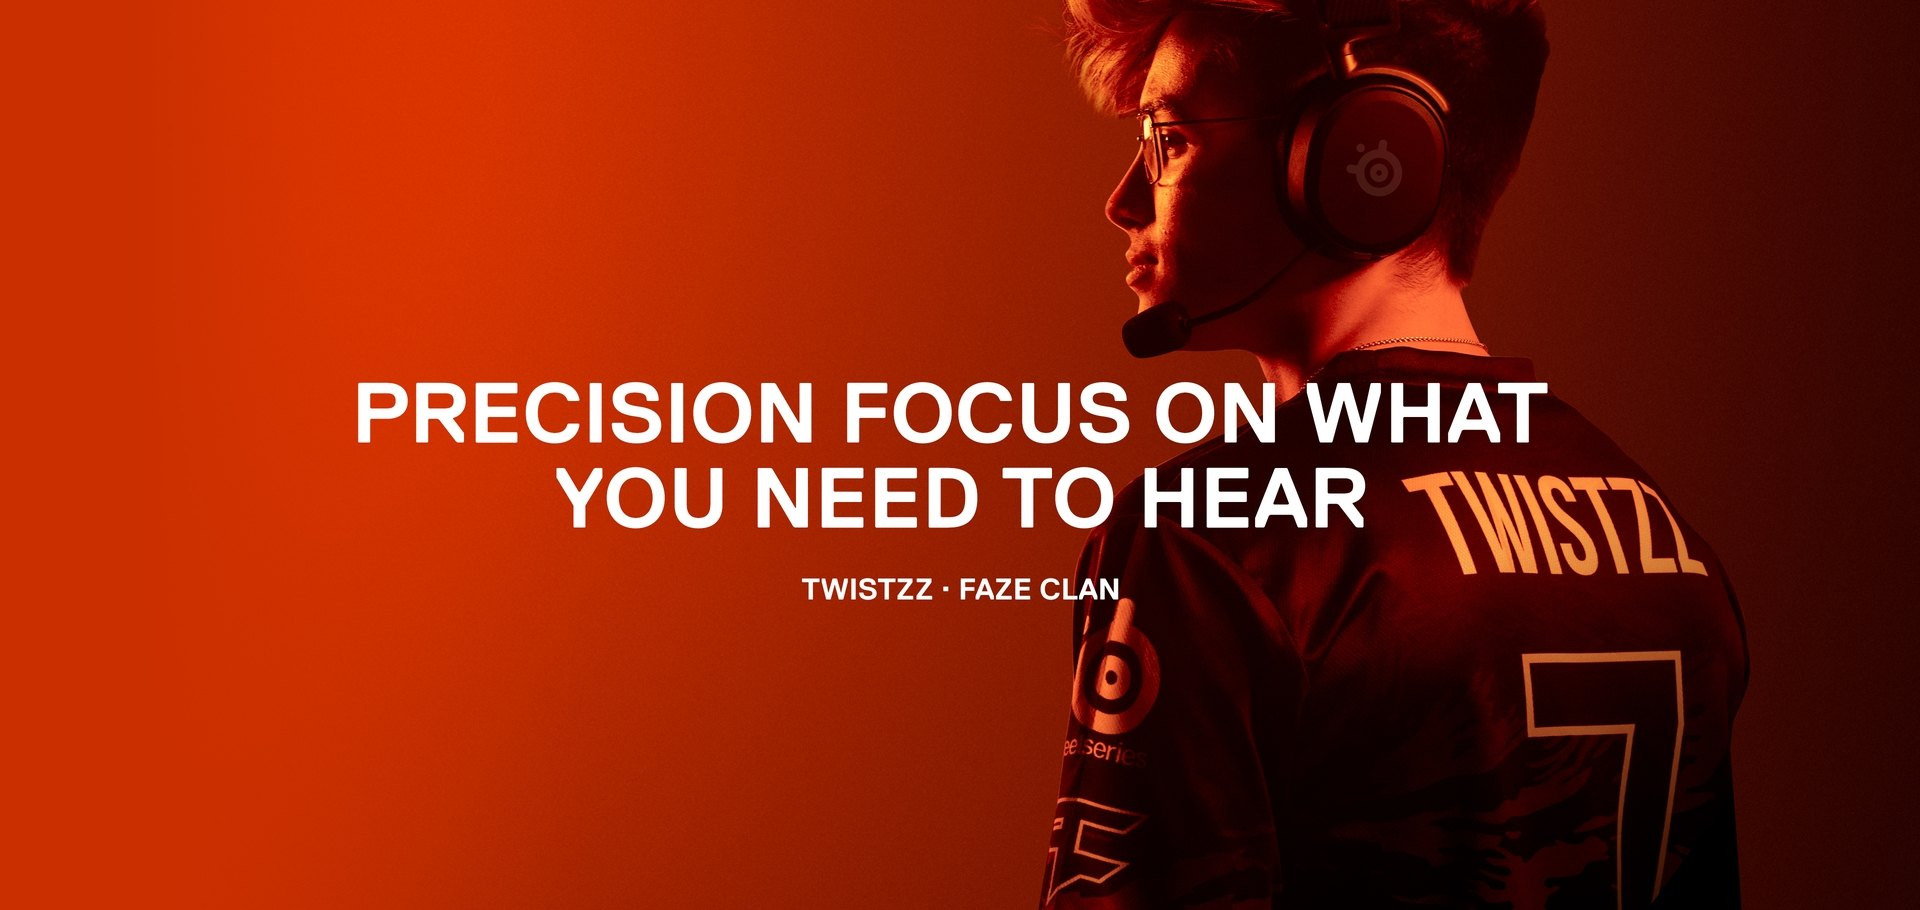 """FaZe player Twistzz stands against an orange background wearing the Arctis Prime headset. Text on the image reads: """"Precision focus on what you need to hear."""""""